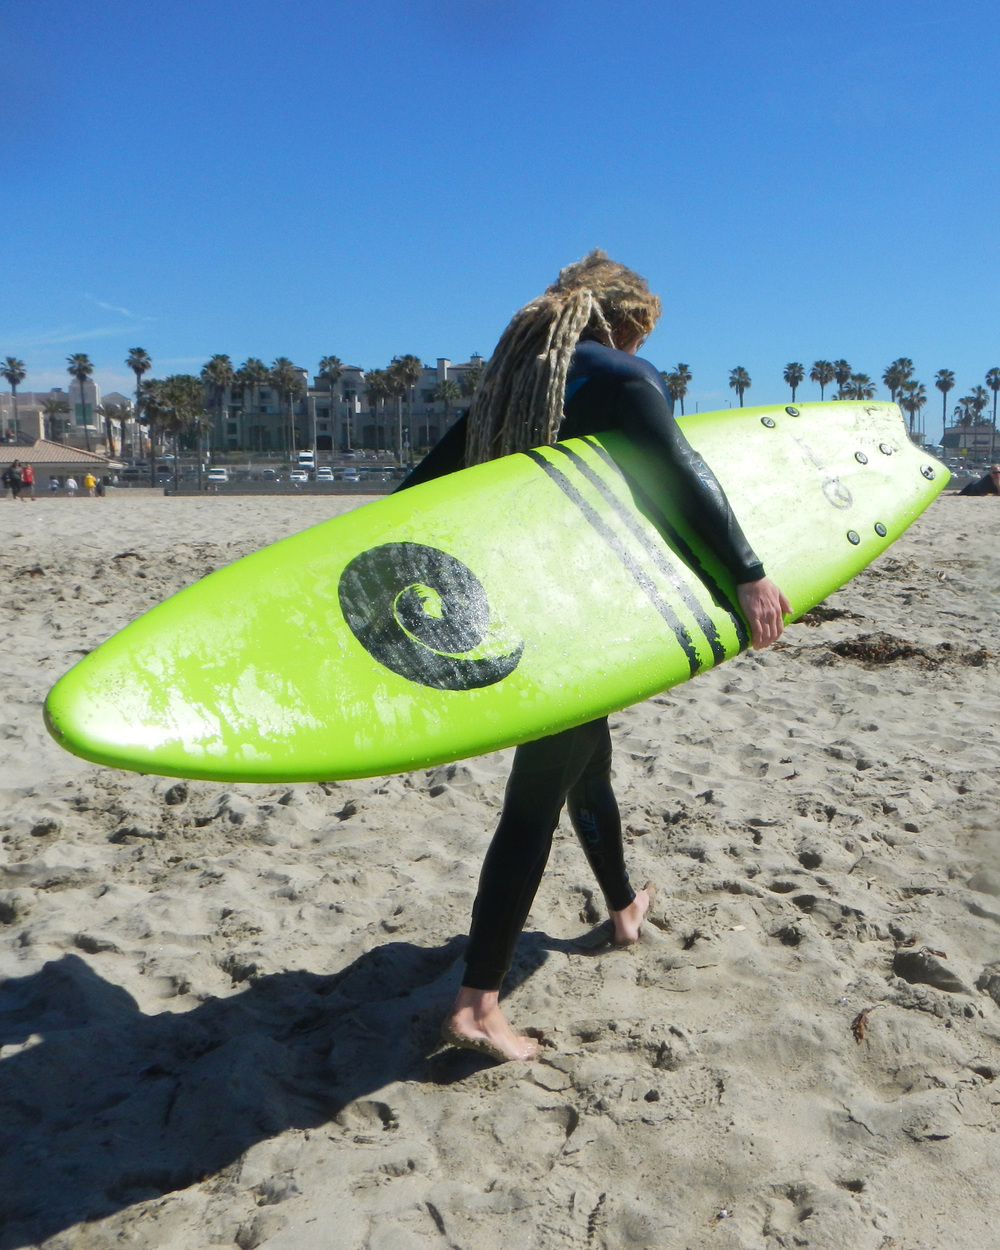 QT-Softtopsurfboard-green-beach.jpg